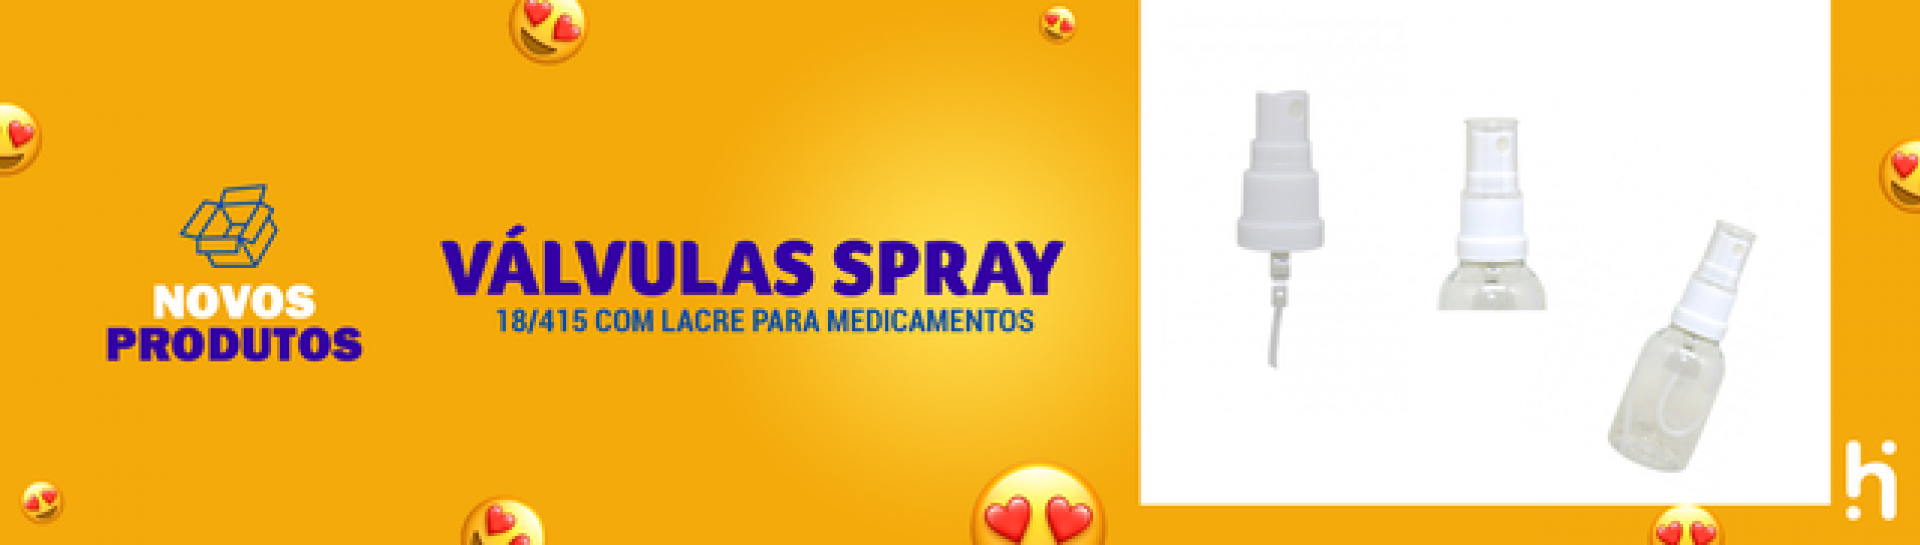 Spray com lacre (Desktop)